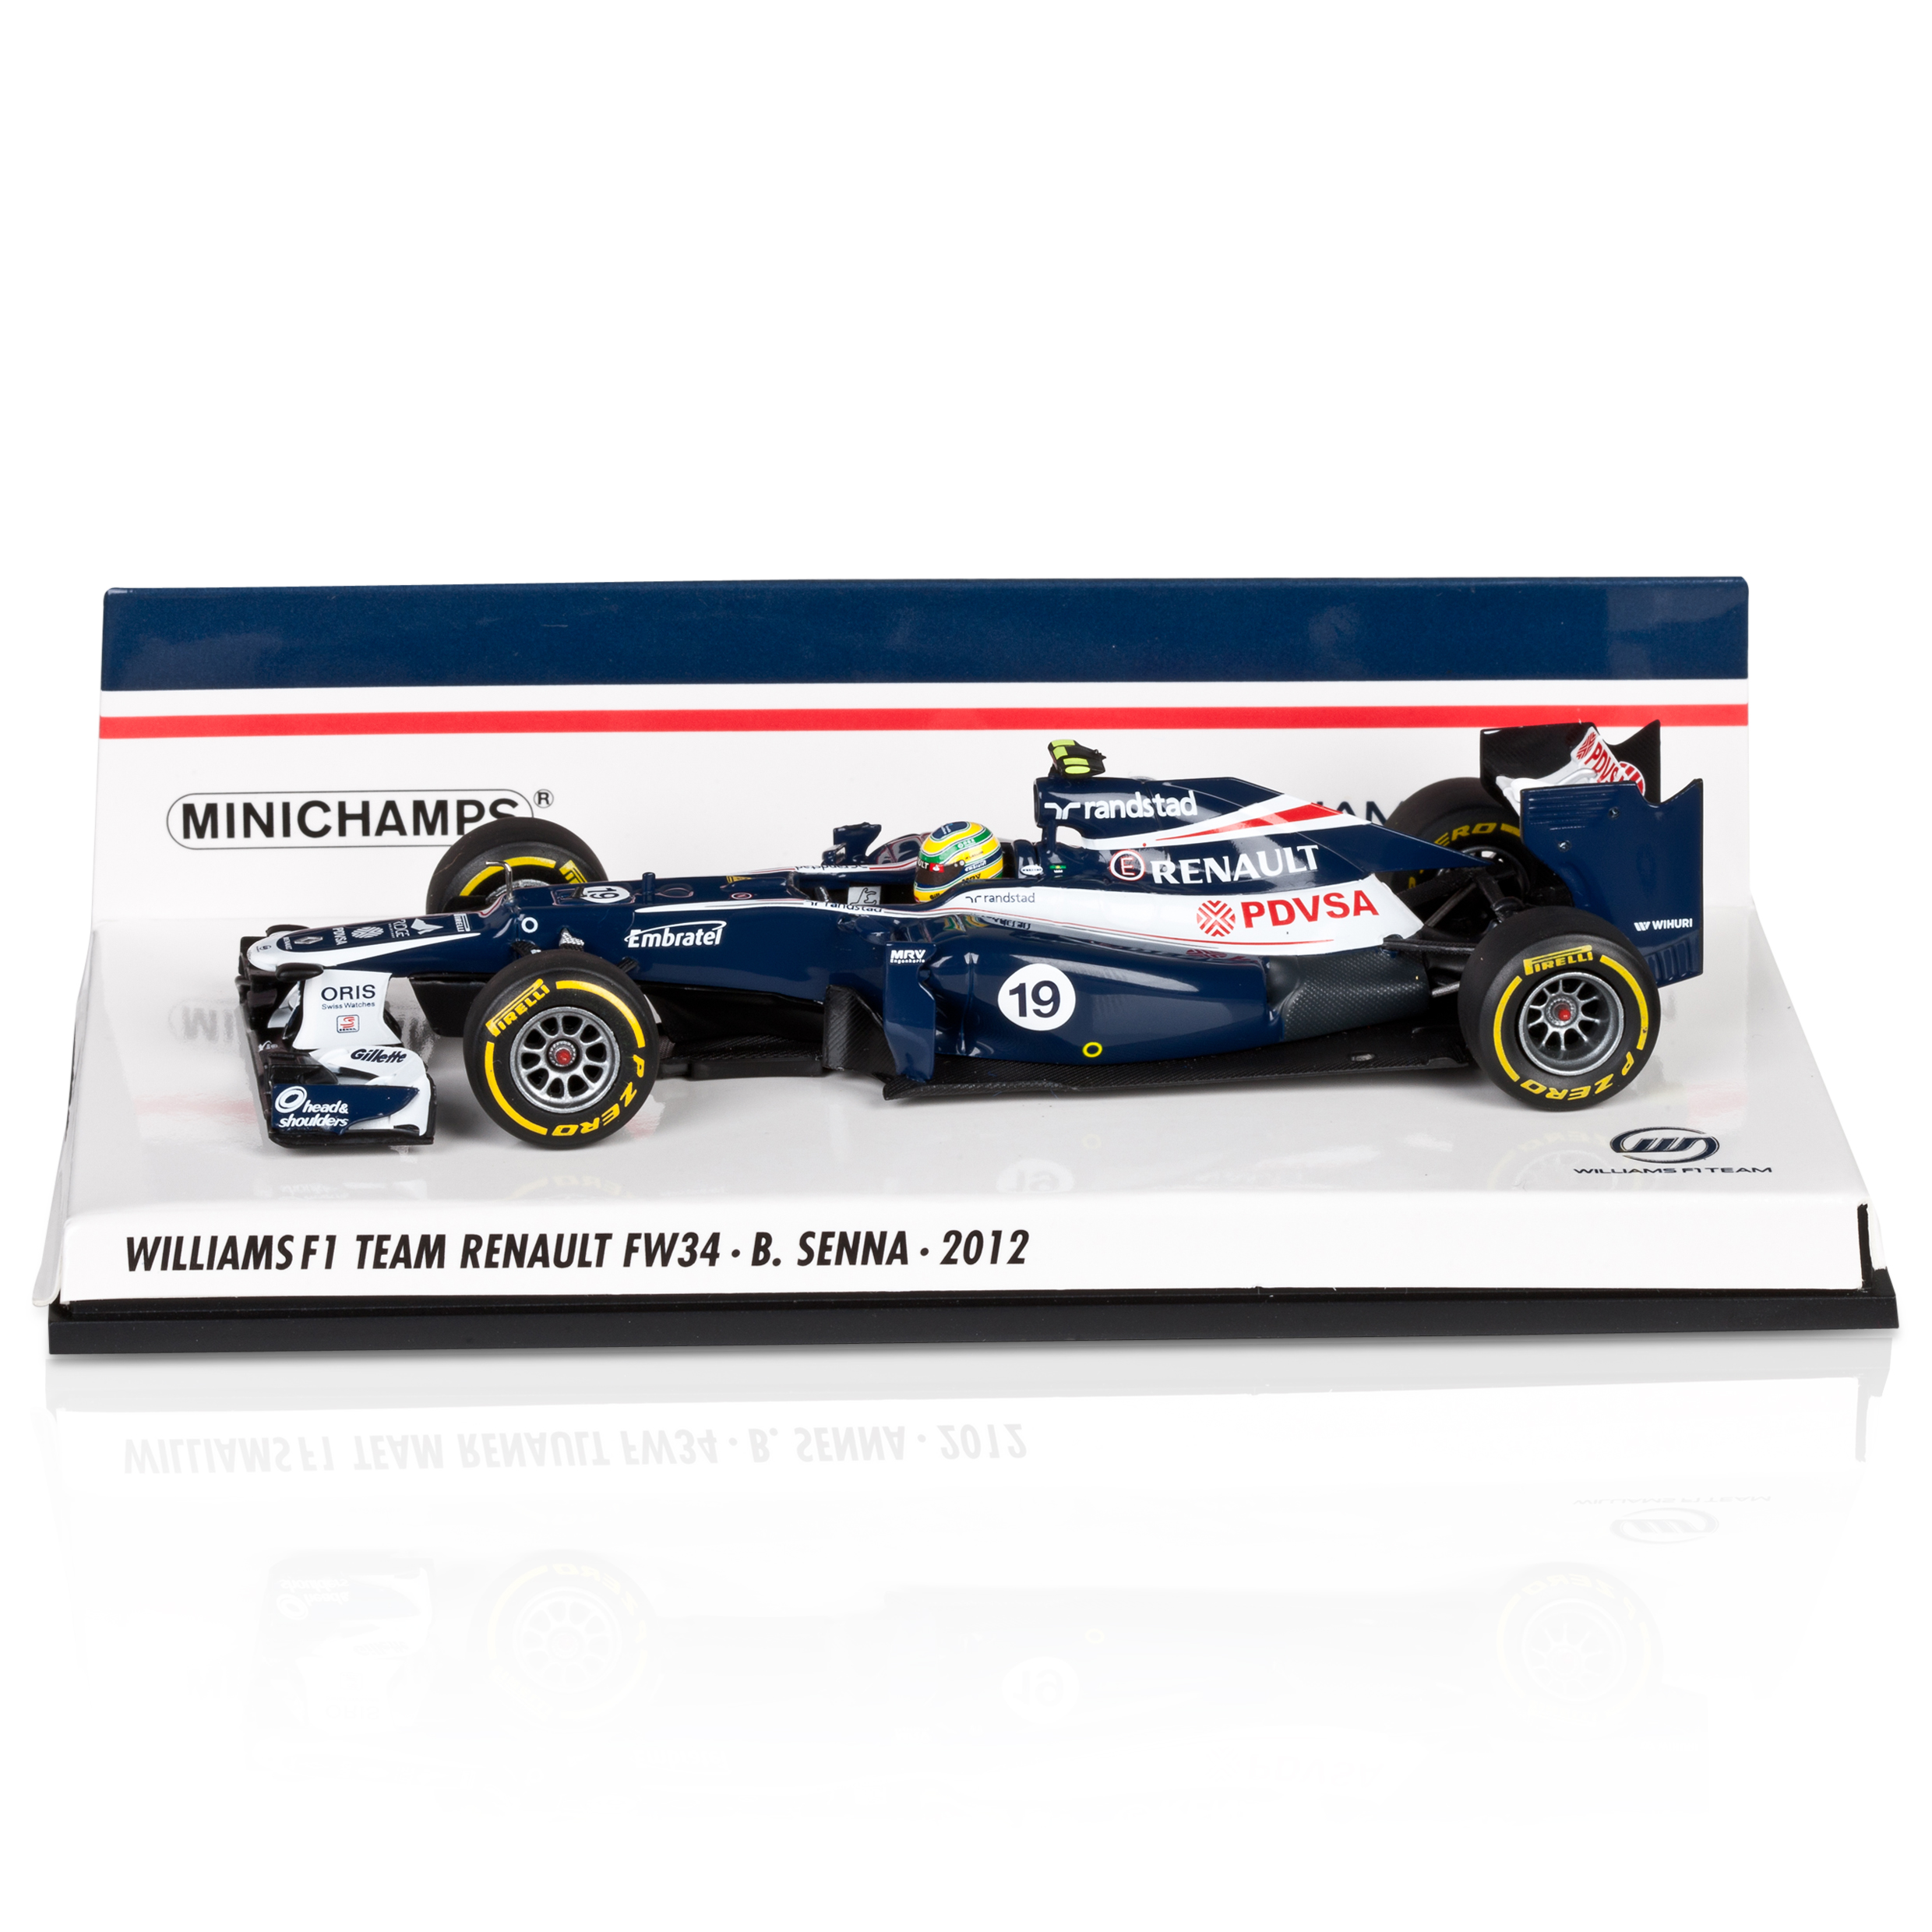 WILLIAMS F1 Team Renault FW34 2012 Bruno Senna 1:43 Scale